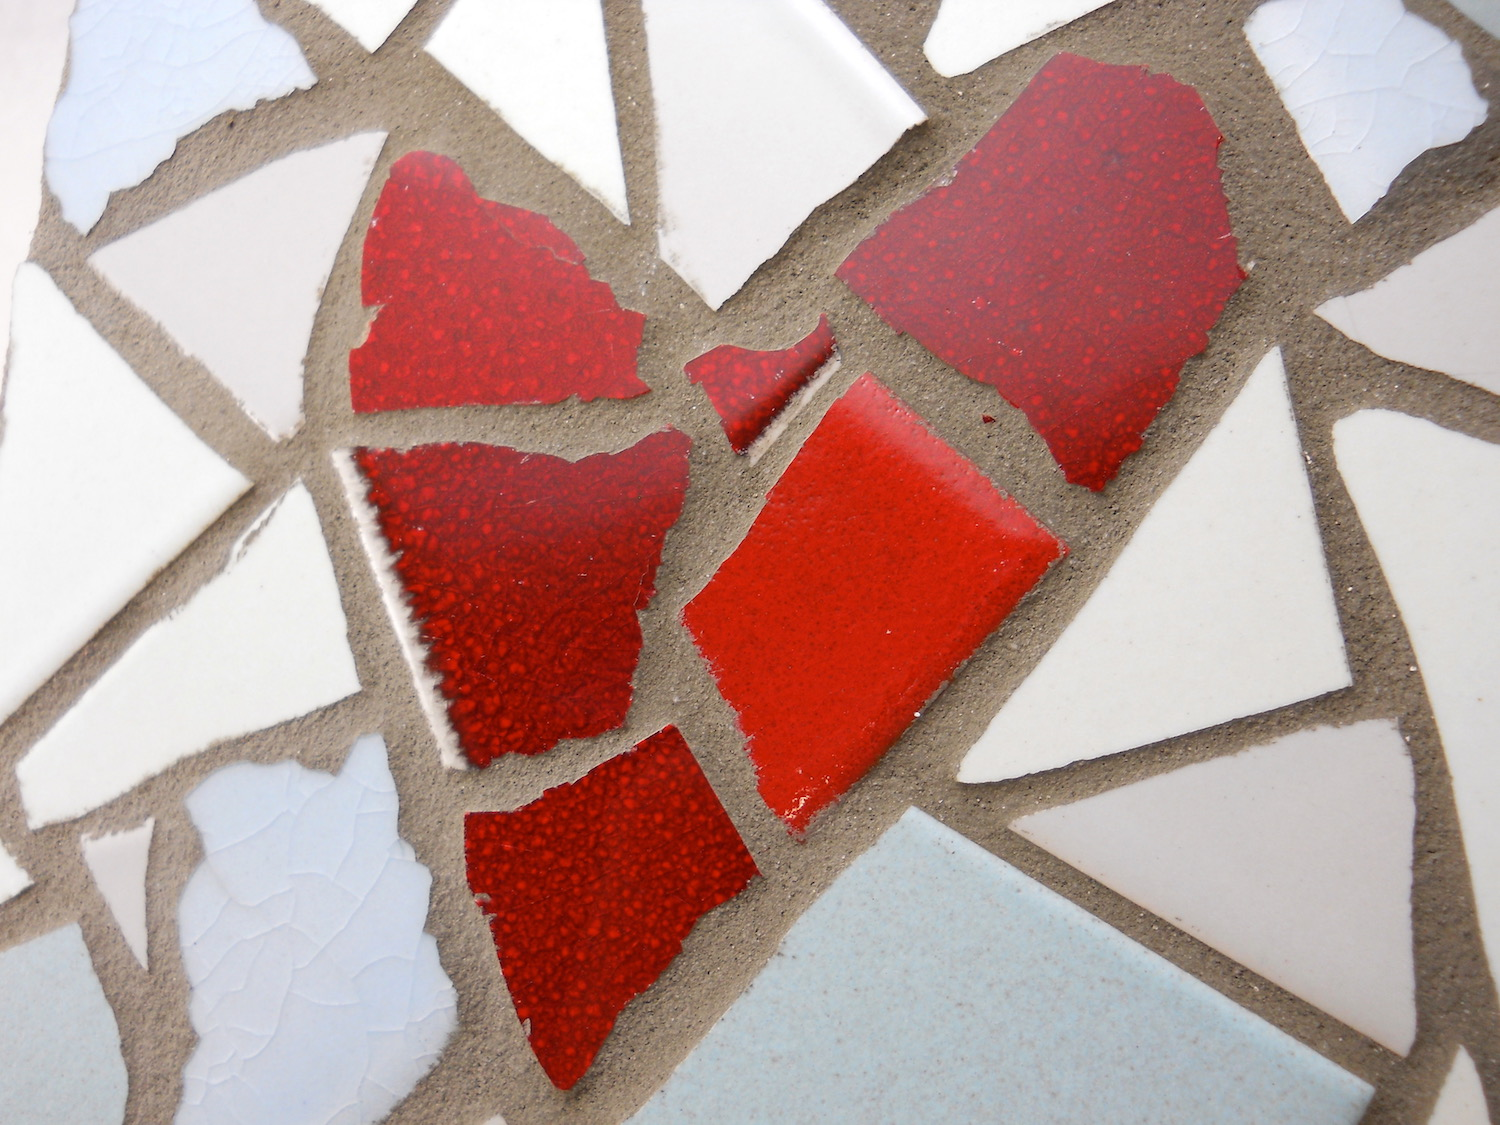 heart mosaic close-up.jpg